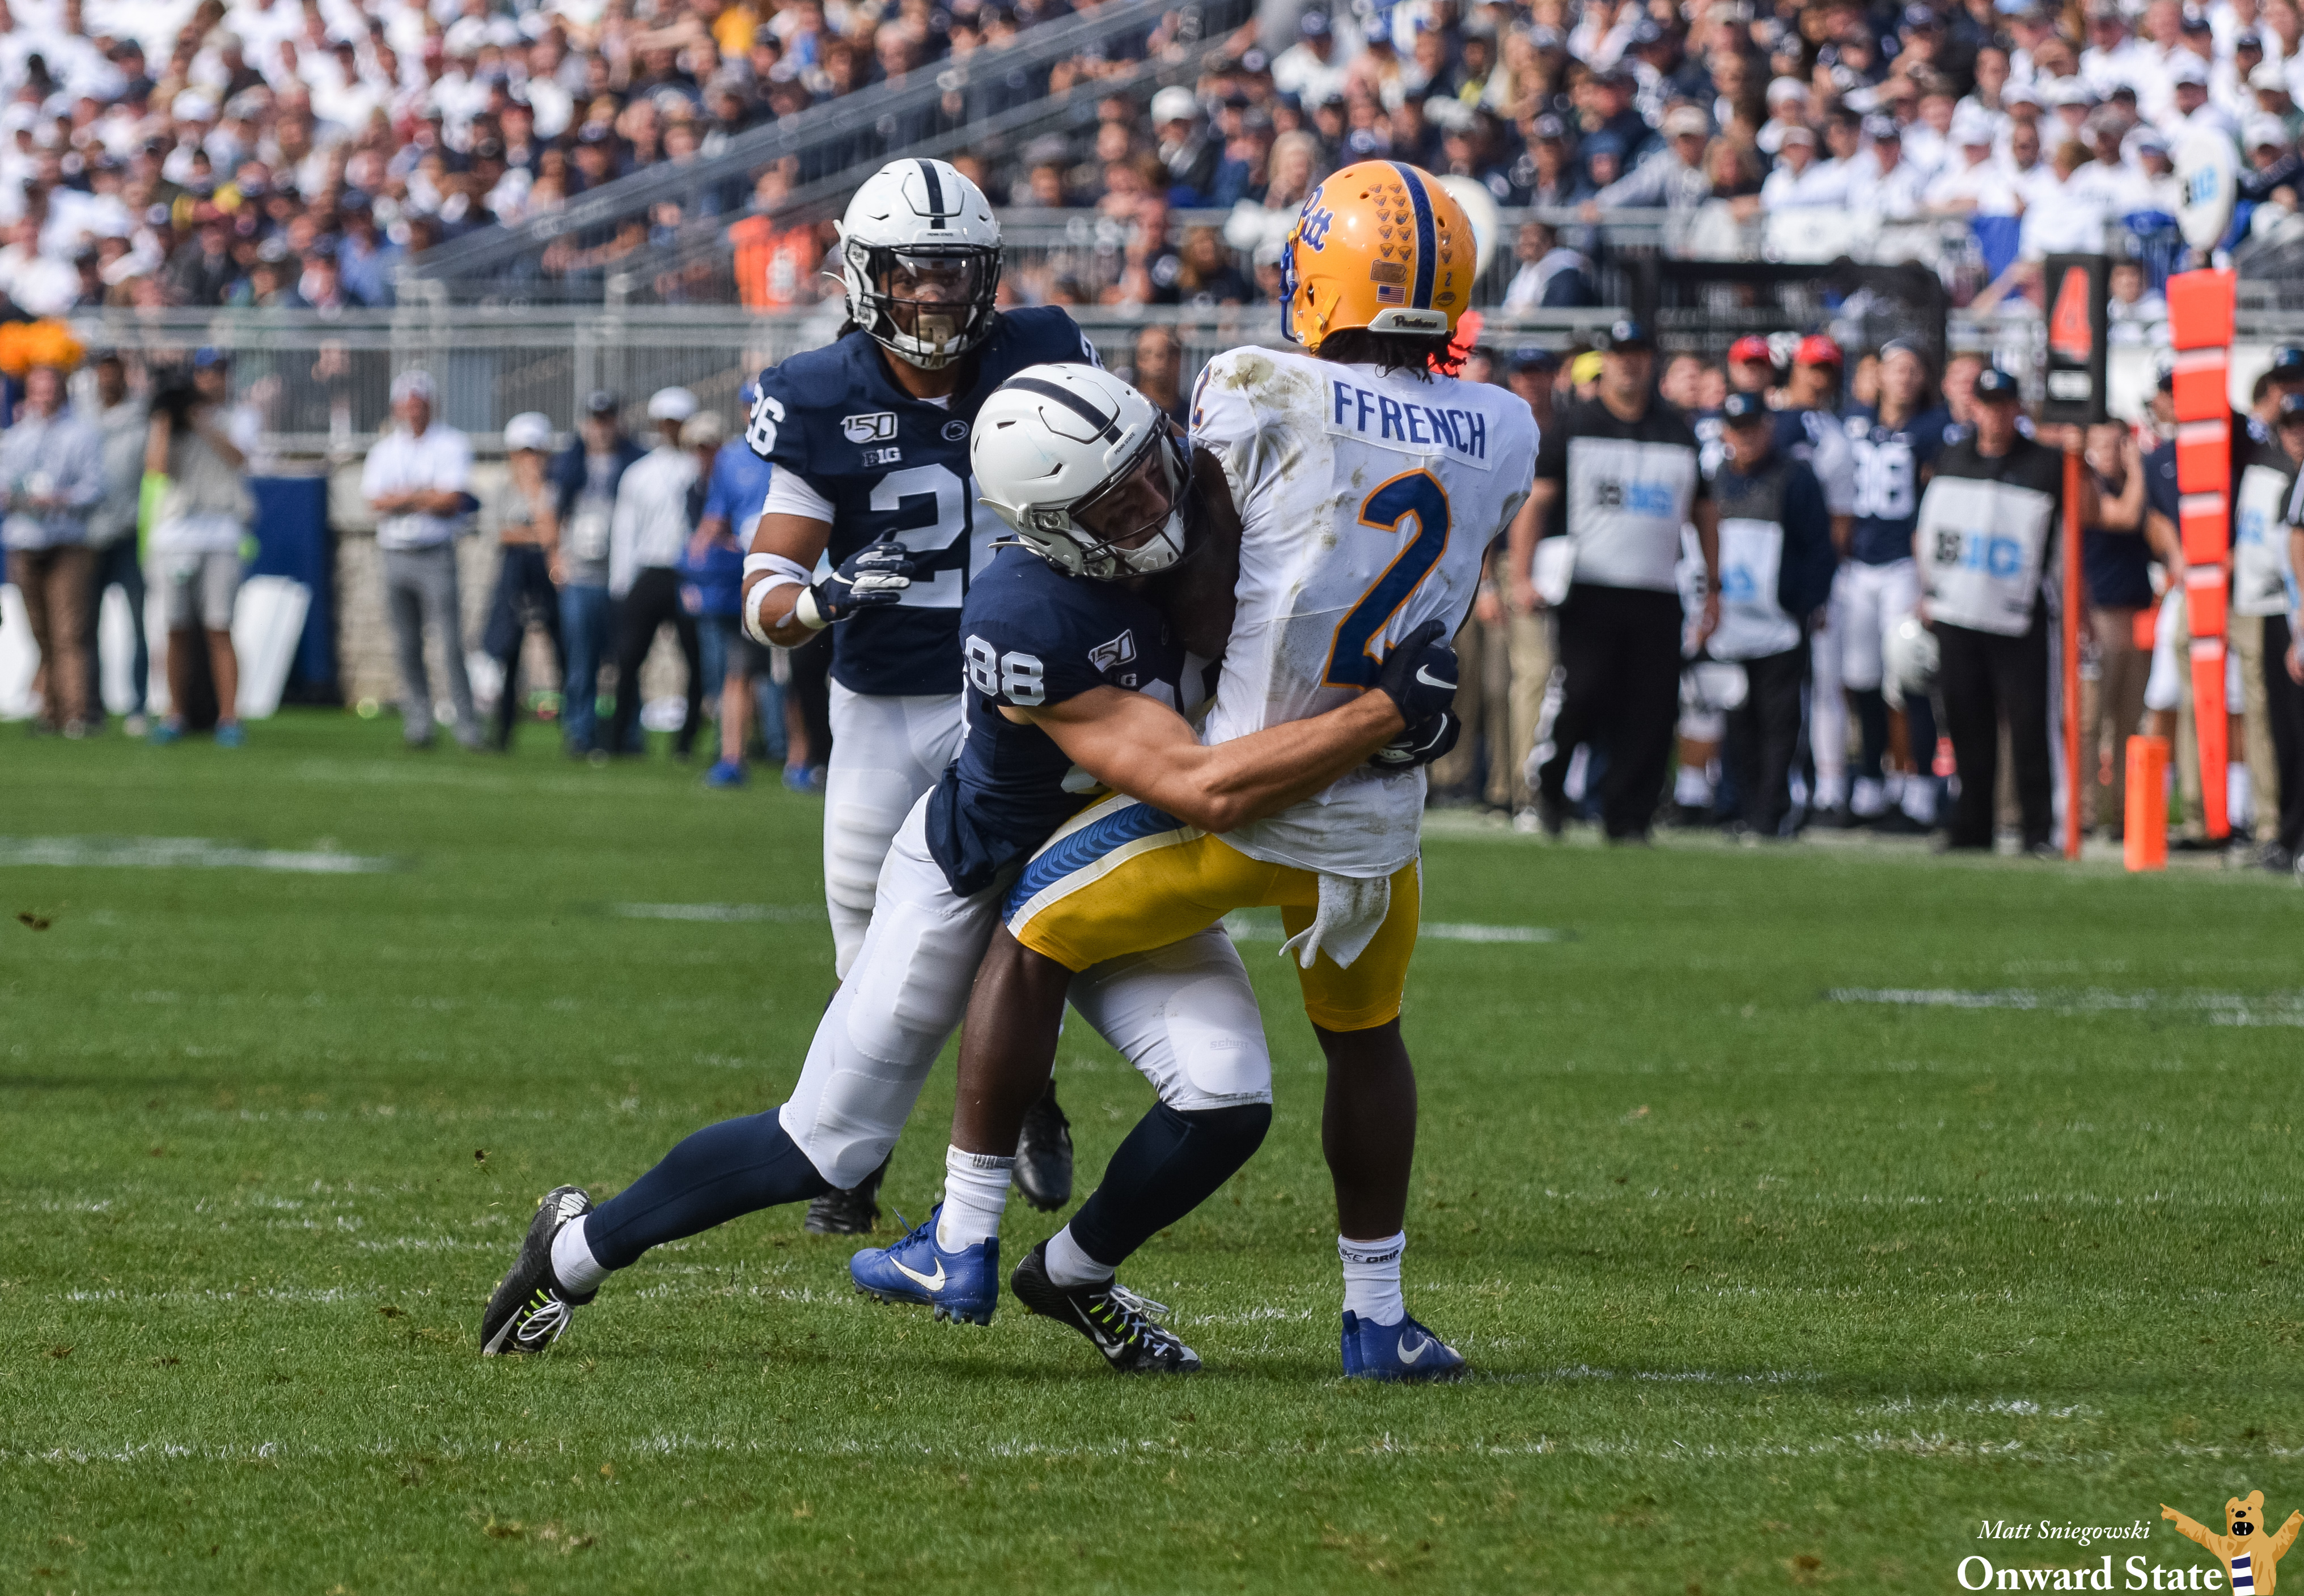 Penn State Wide Receiver Dan Chisena Wins Tropical Bowl Overall Mvp Onward State